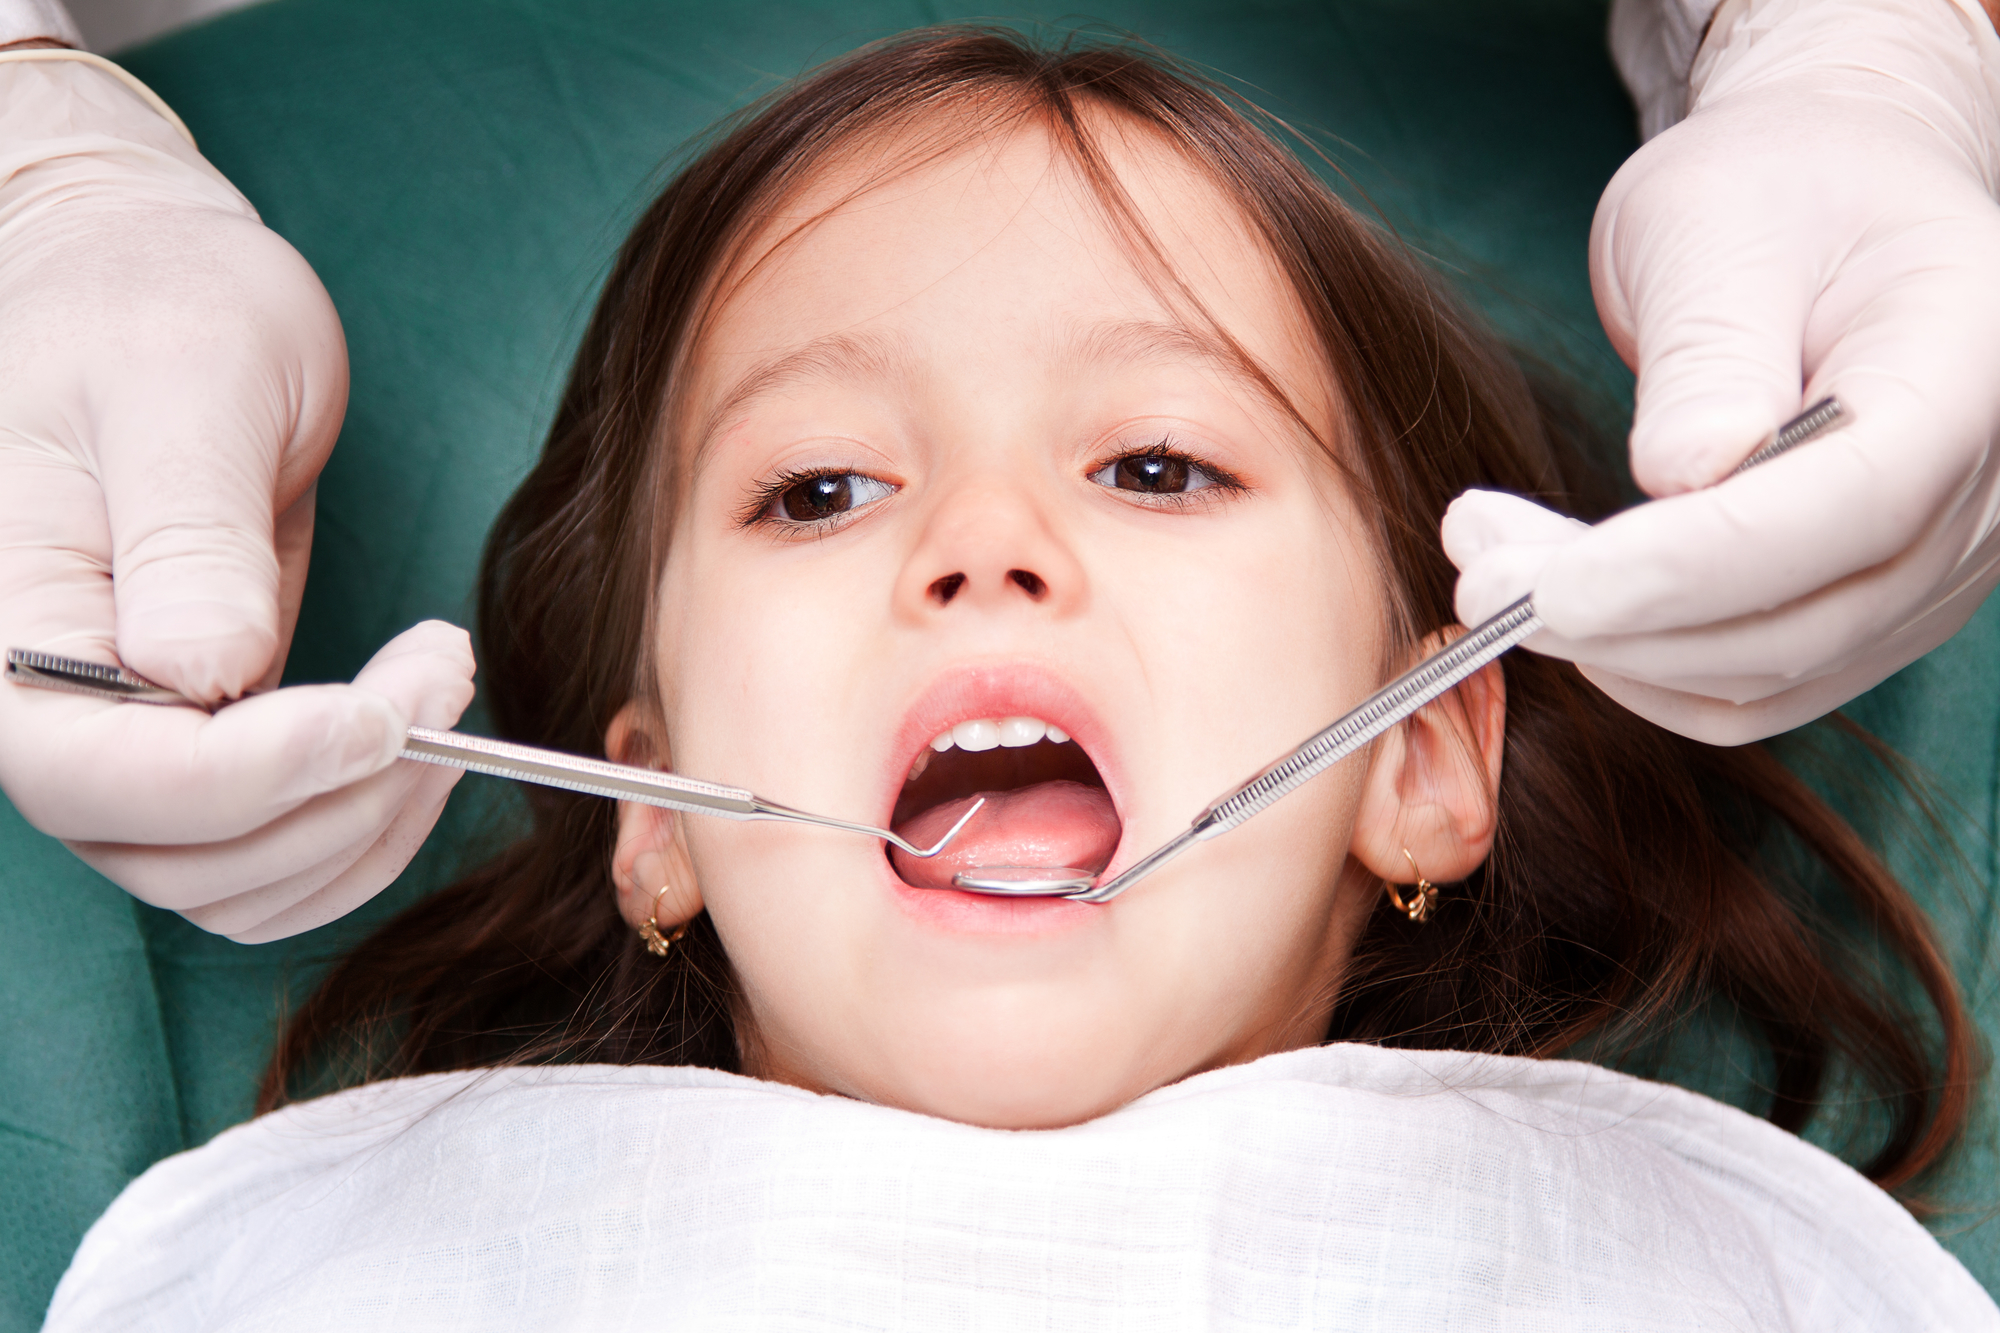 who offers good plantation oral surgery?